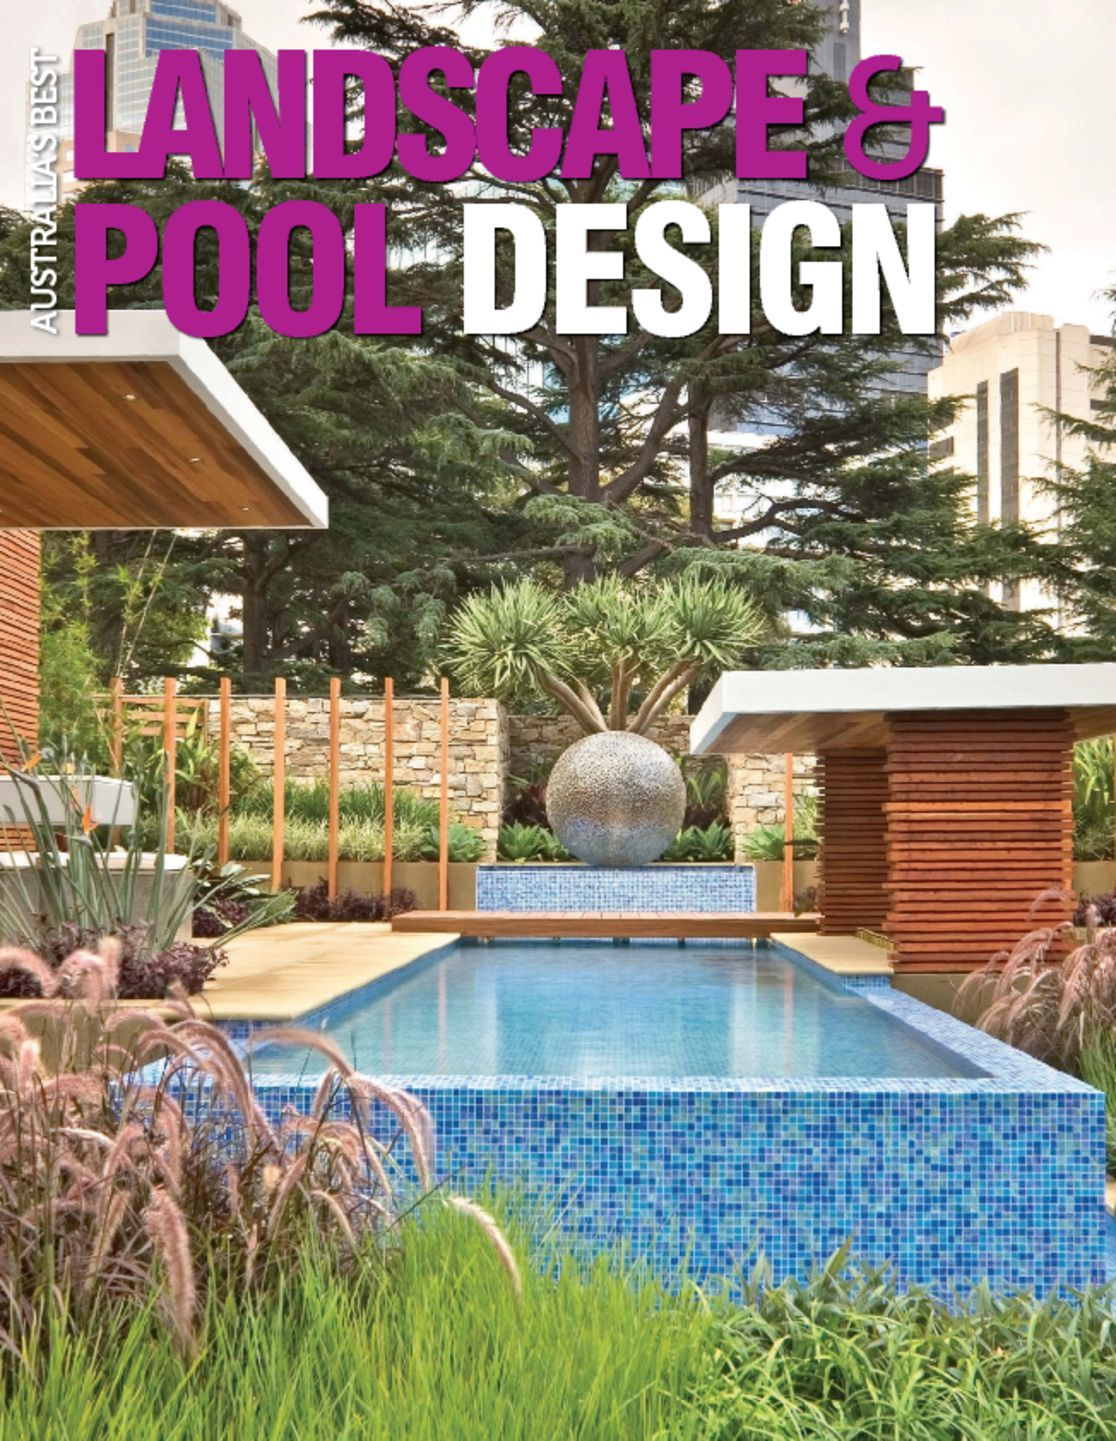 australia 39 s best landscape pool design magazine digital